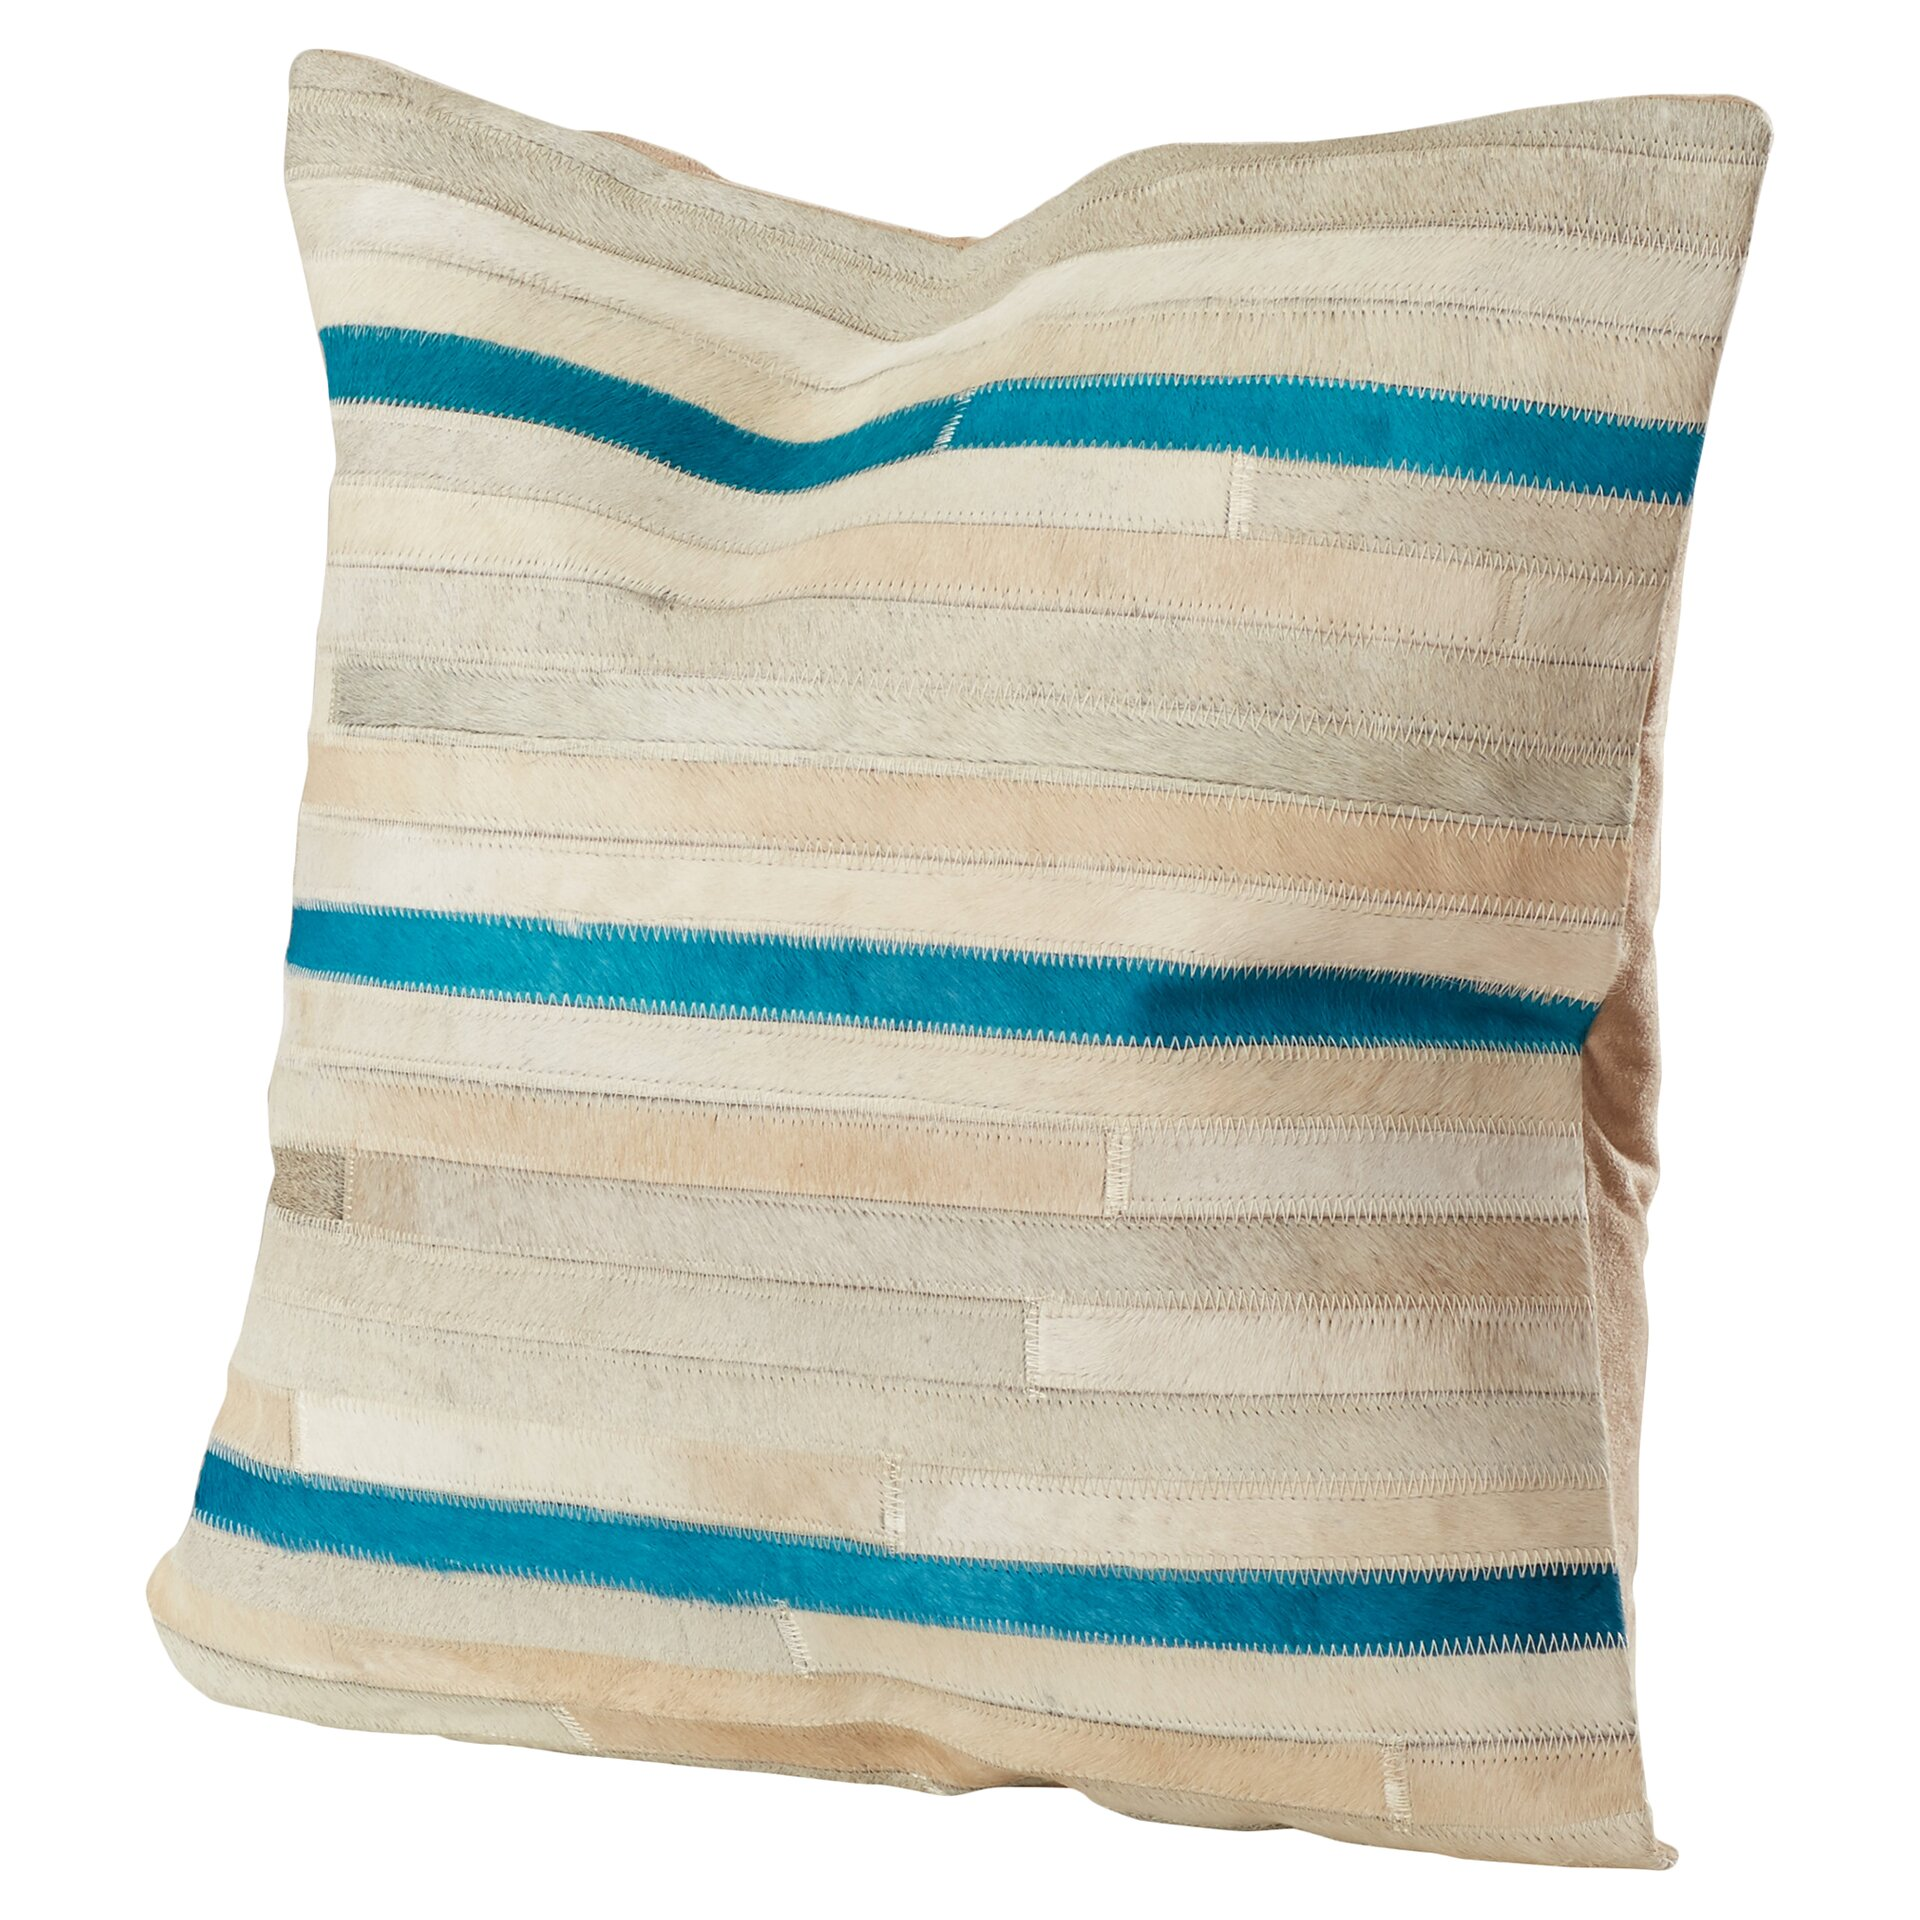 Max Studio Home Decorative Pillows : Brayden Studio Garry Cotton Throw Pillow & Reviews Wayfair